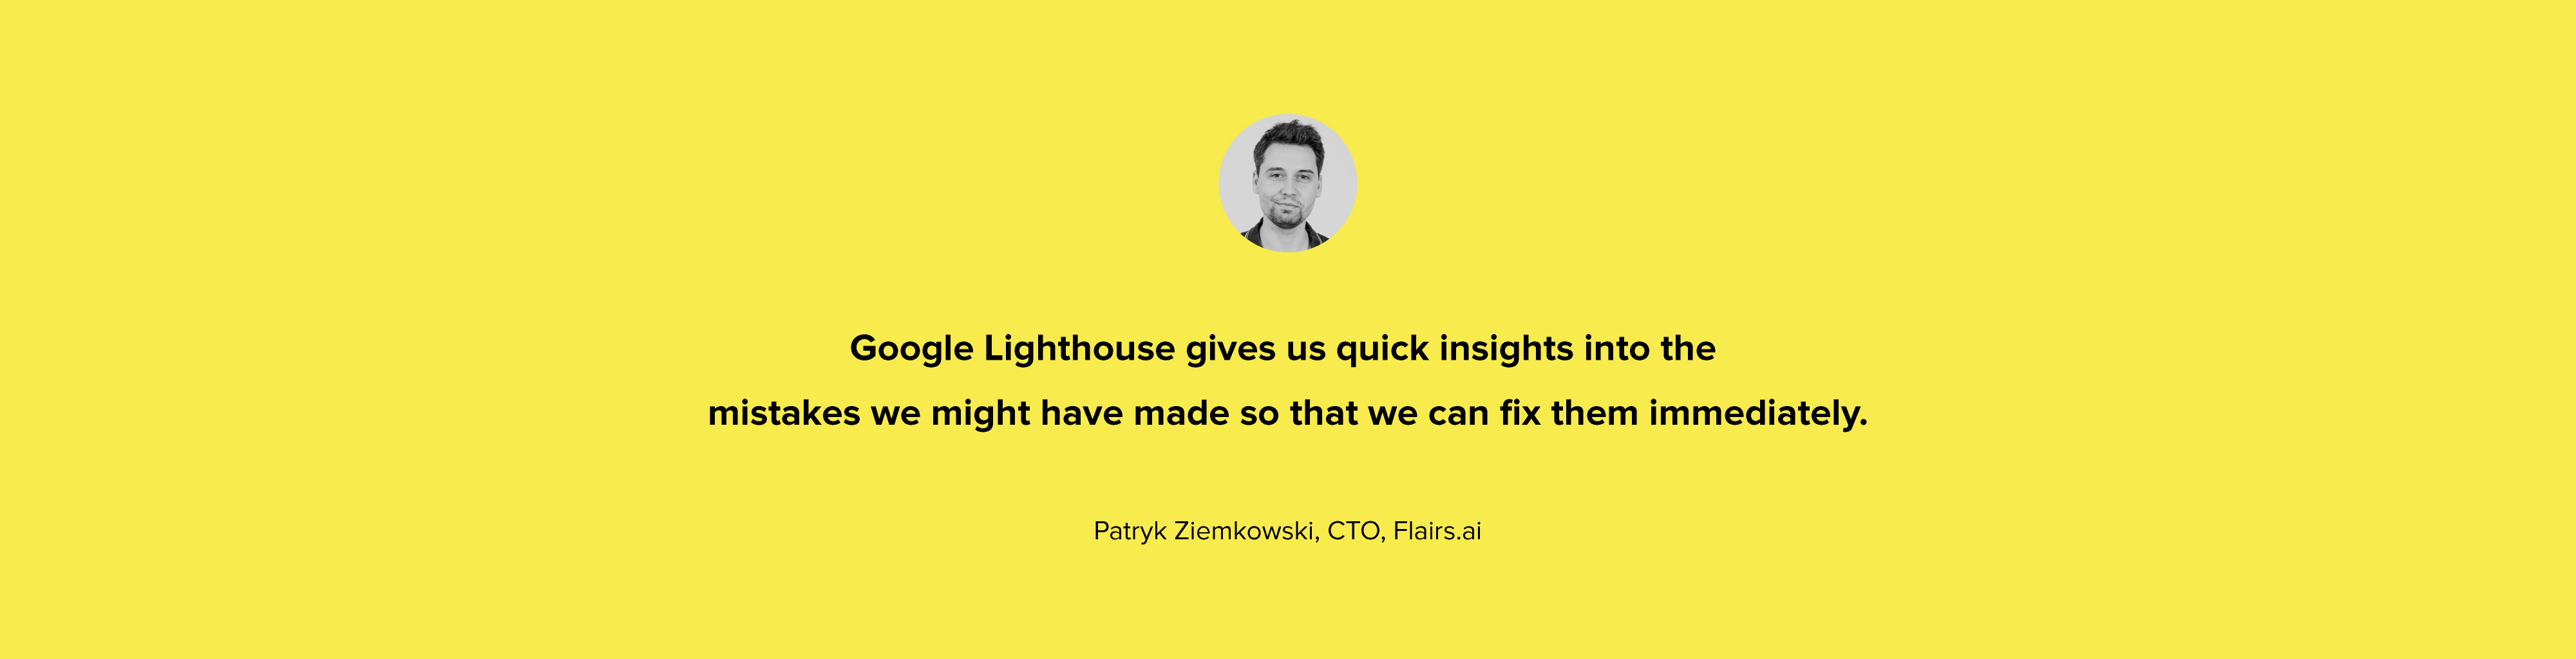 patryk quote web